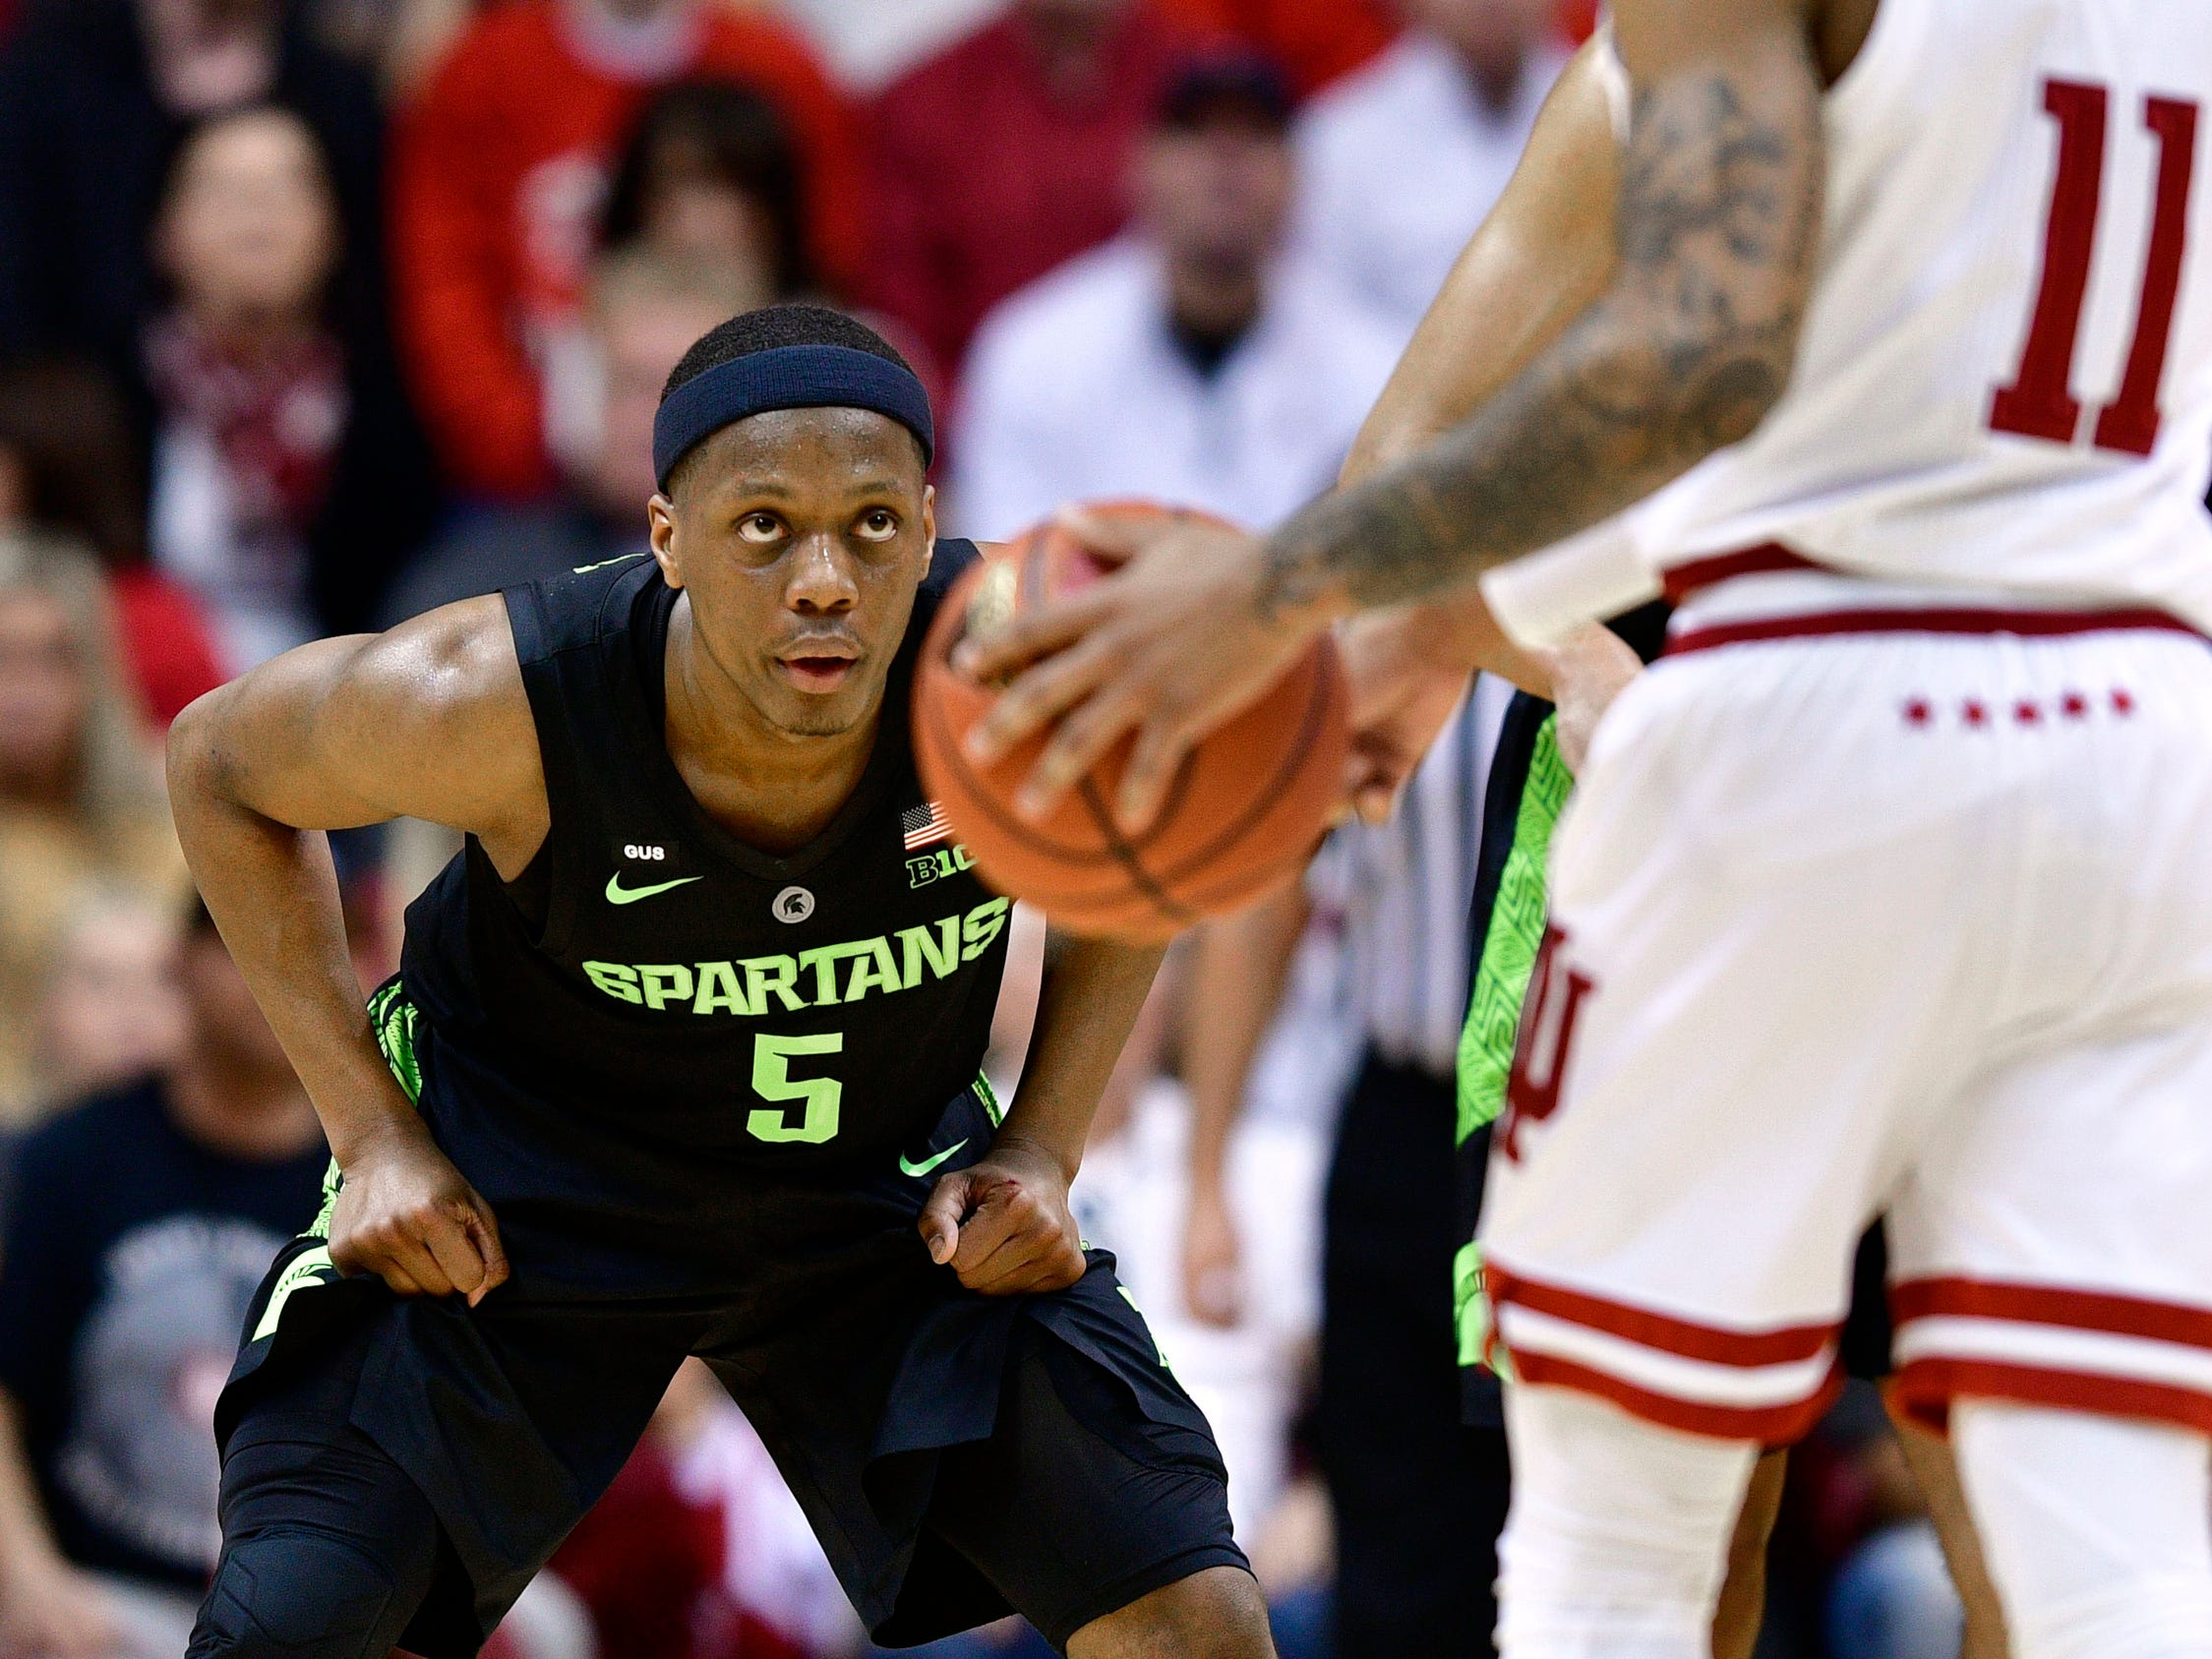 Michigan State guard Cassius Winston in his defensive stance guarding Indiana guard Devonte Green during the second half March 2, 2019, in Bloomington, Ind.